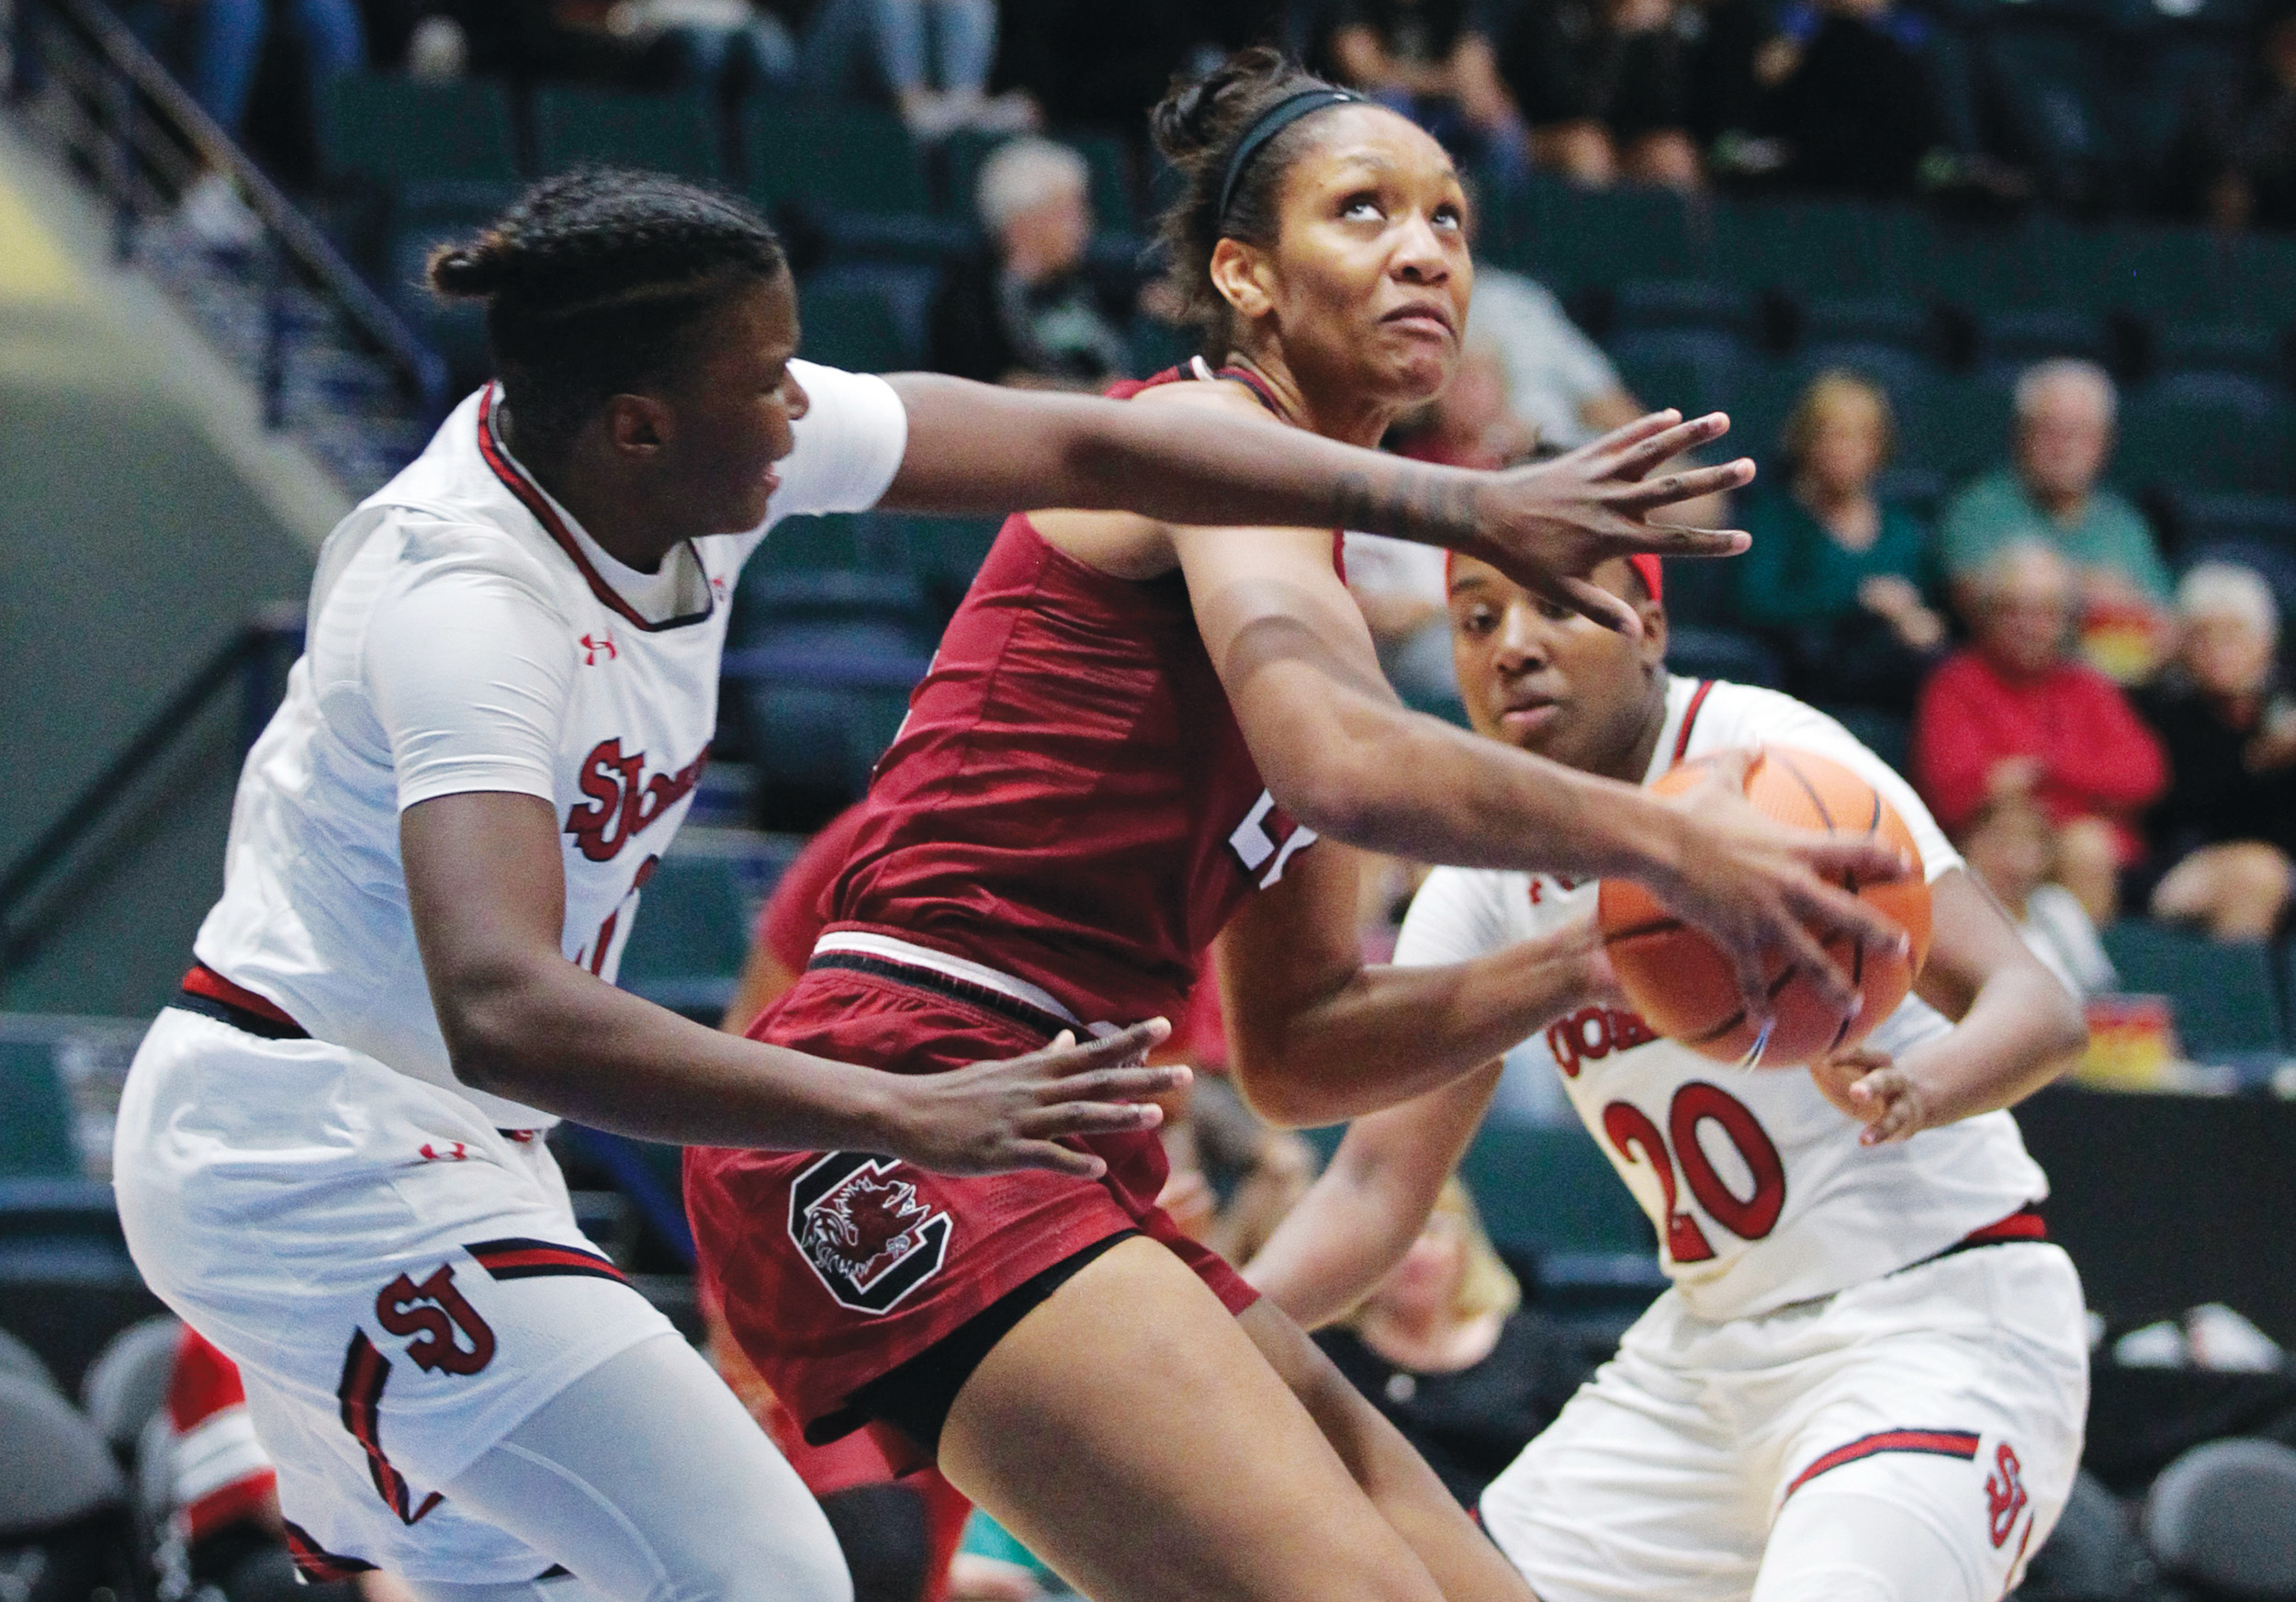 South Carolina's A'ja Wilson, center, prepares to shoot against St. John's Alisha Kebbe, left, and Akina Wellere (20) during the Gamecocks' 76-58 victory in the Gulf Coast Showcase on Saturday in Estero, Florida.